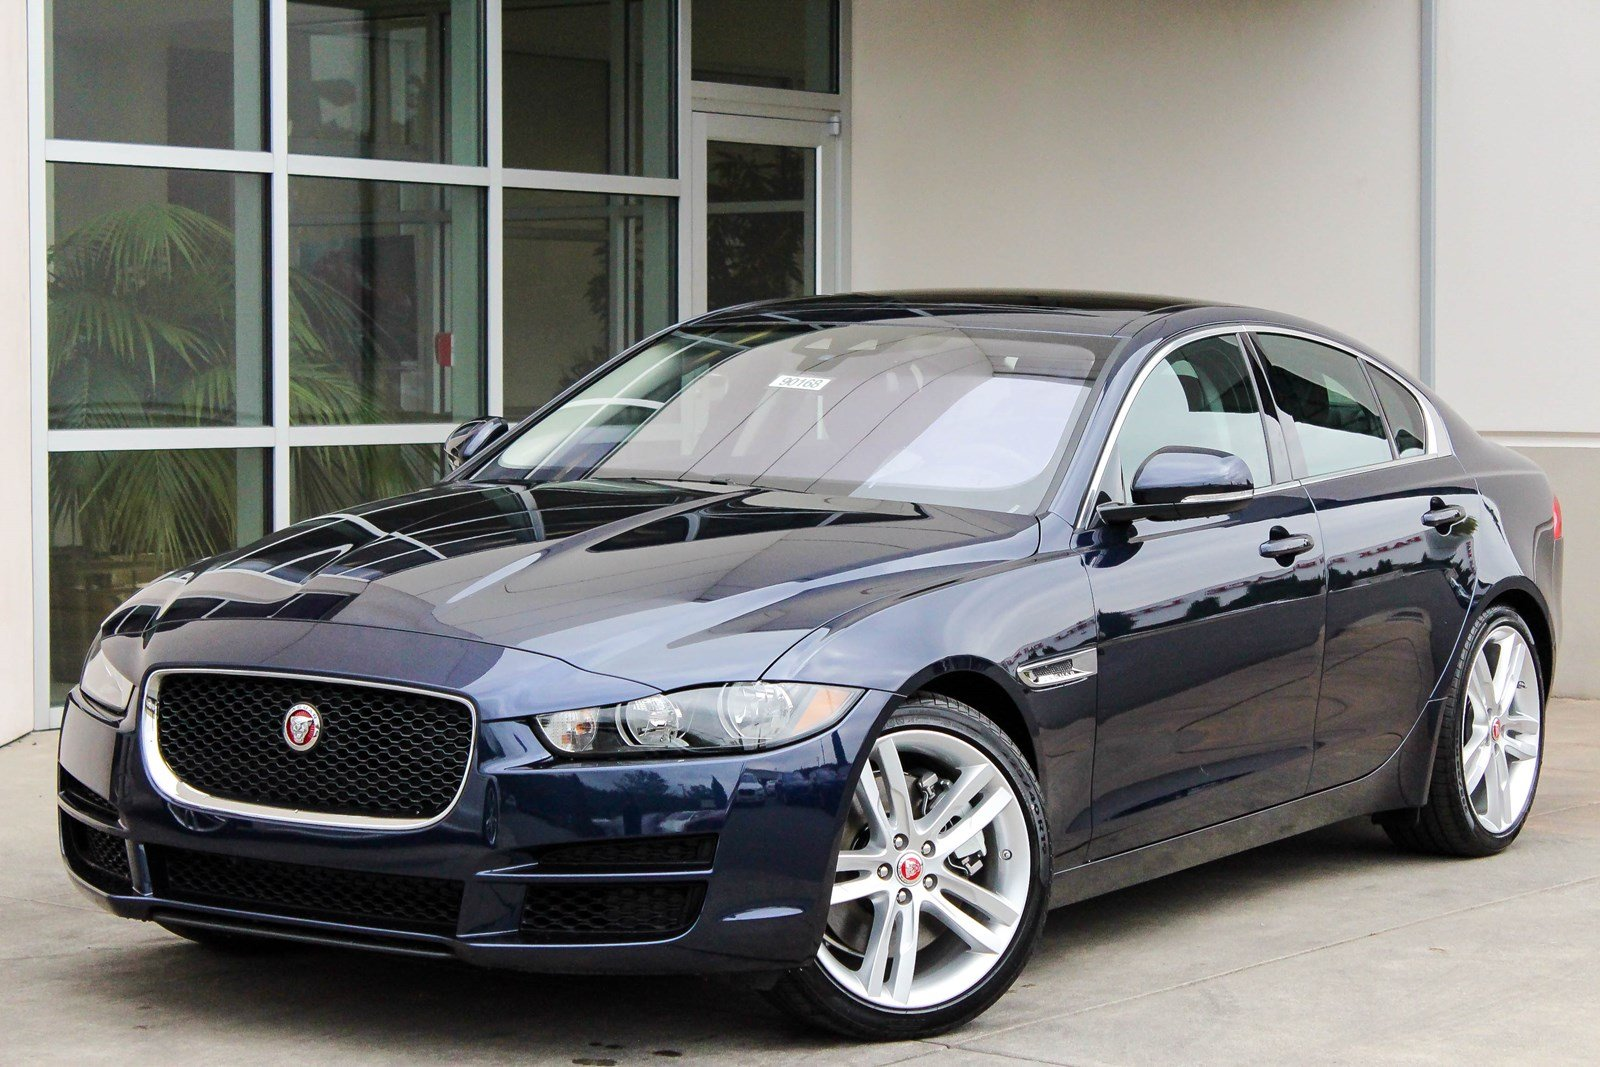 new 2018 jaguar xe 35t prestige 4dr car in bellevue 90168 jaguar bellevue. Black Bedroom Furniture Sets. Home Design Ideas